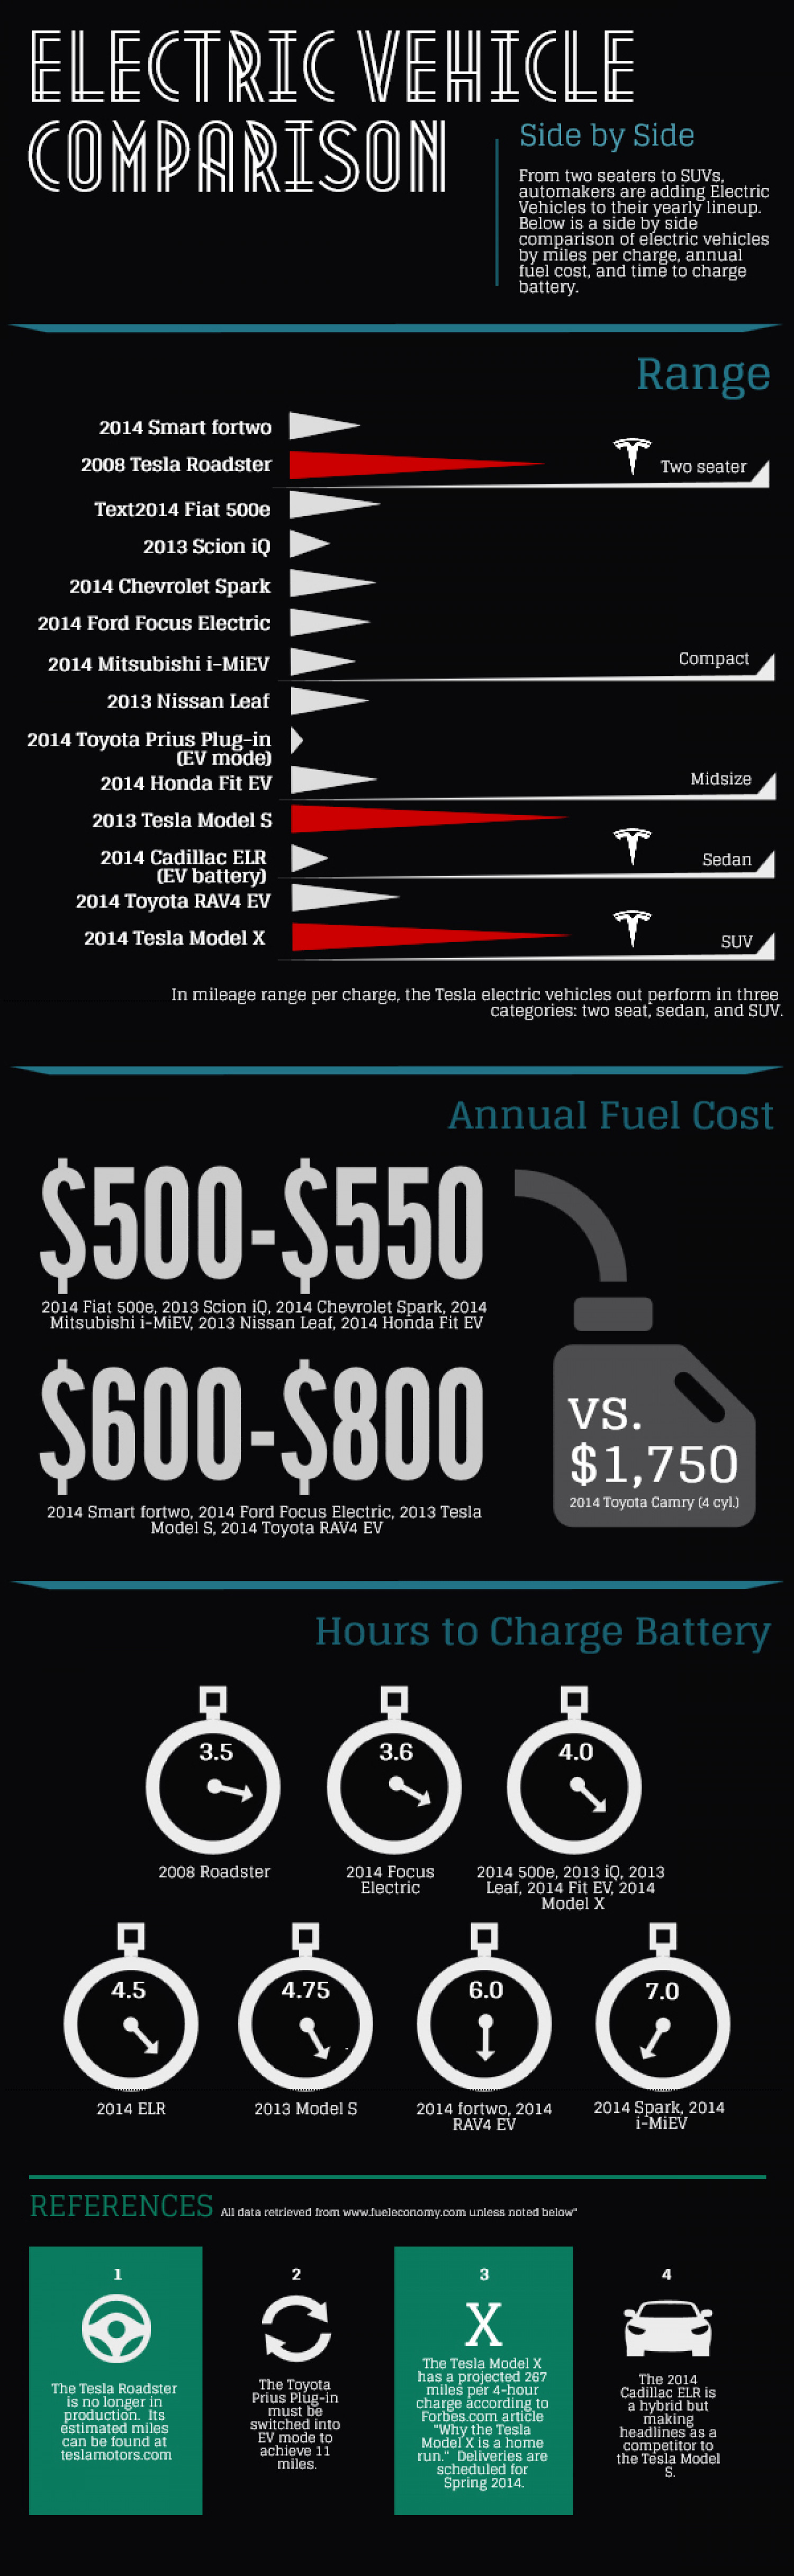 Electric Vehicle Comparisons Infographic